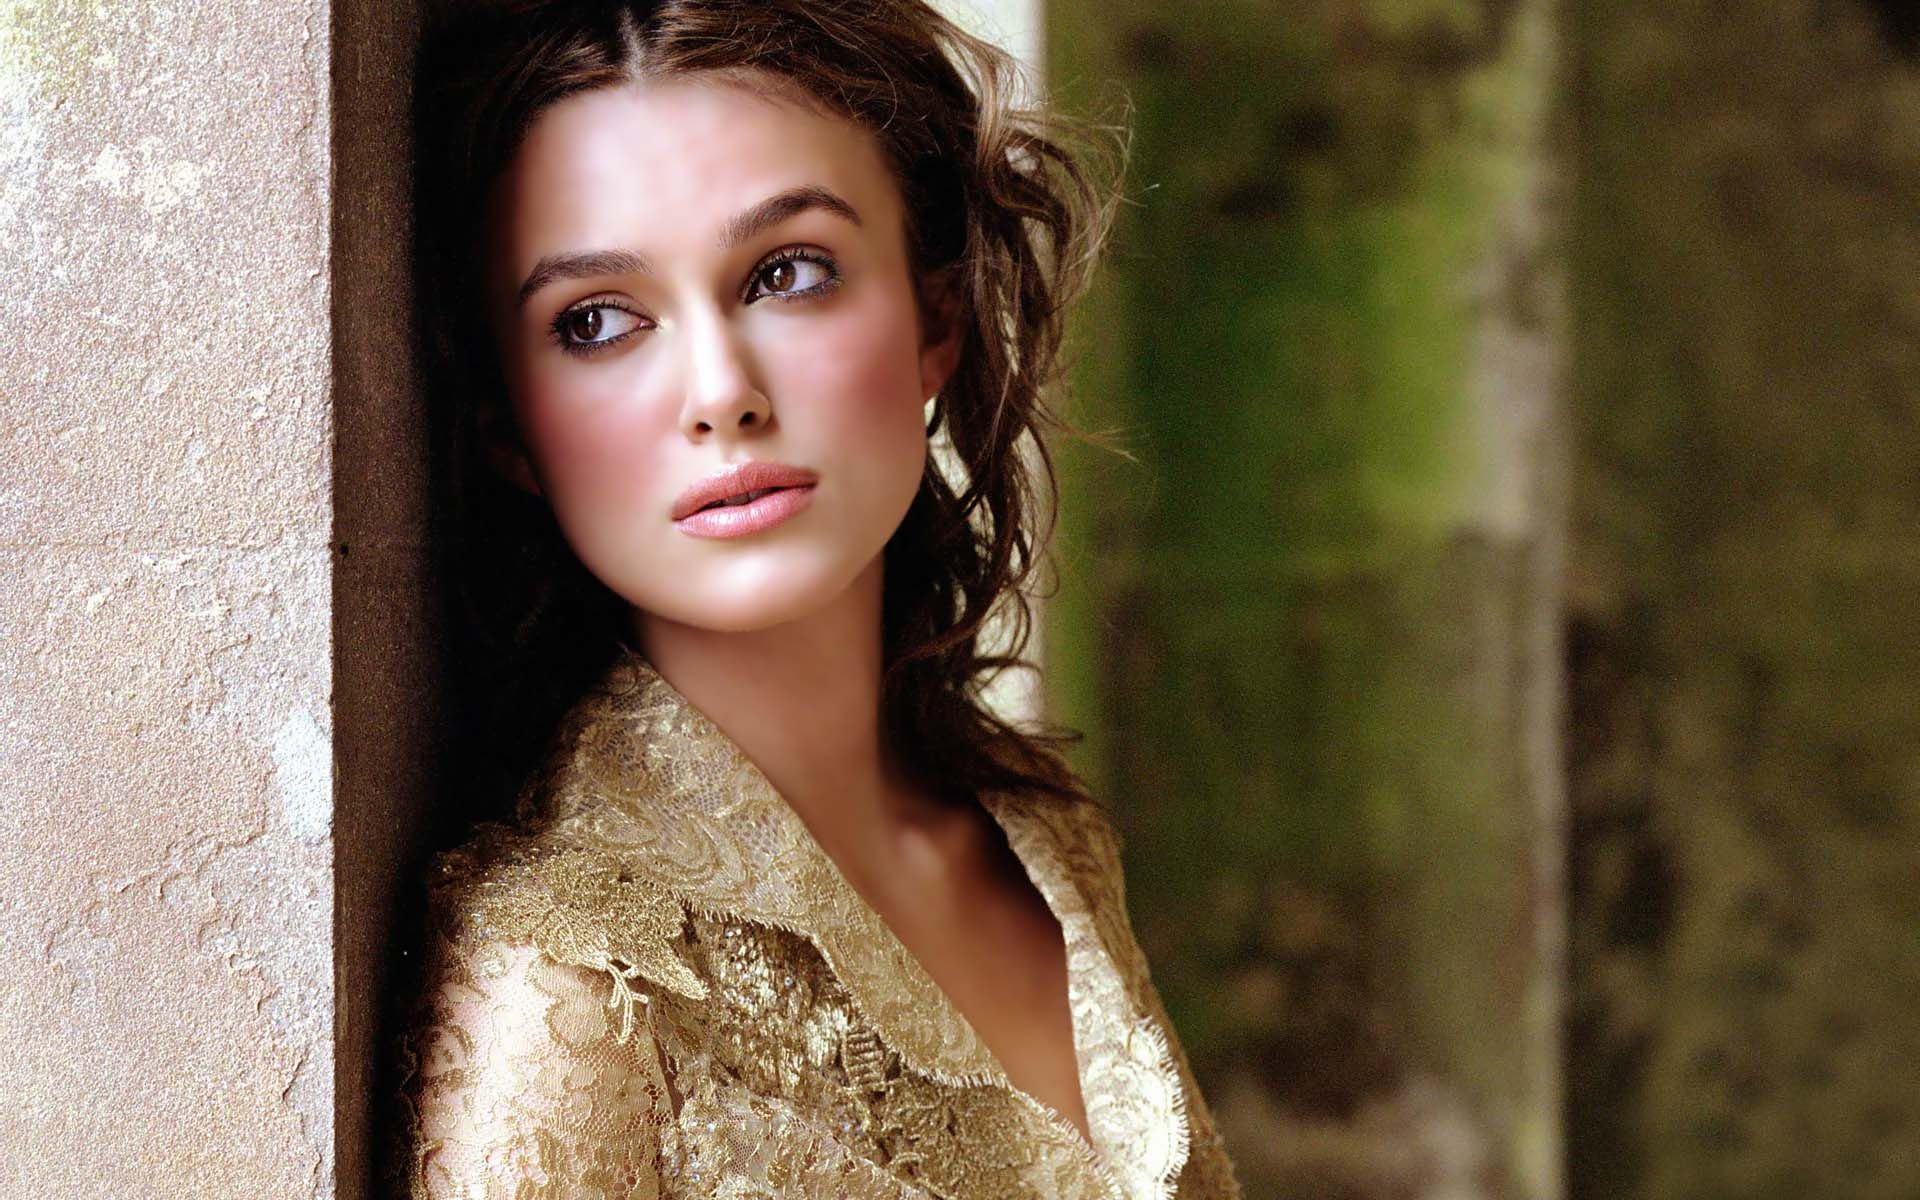 1920x1200 - Keira Knightley Wallpapers 22